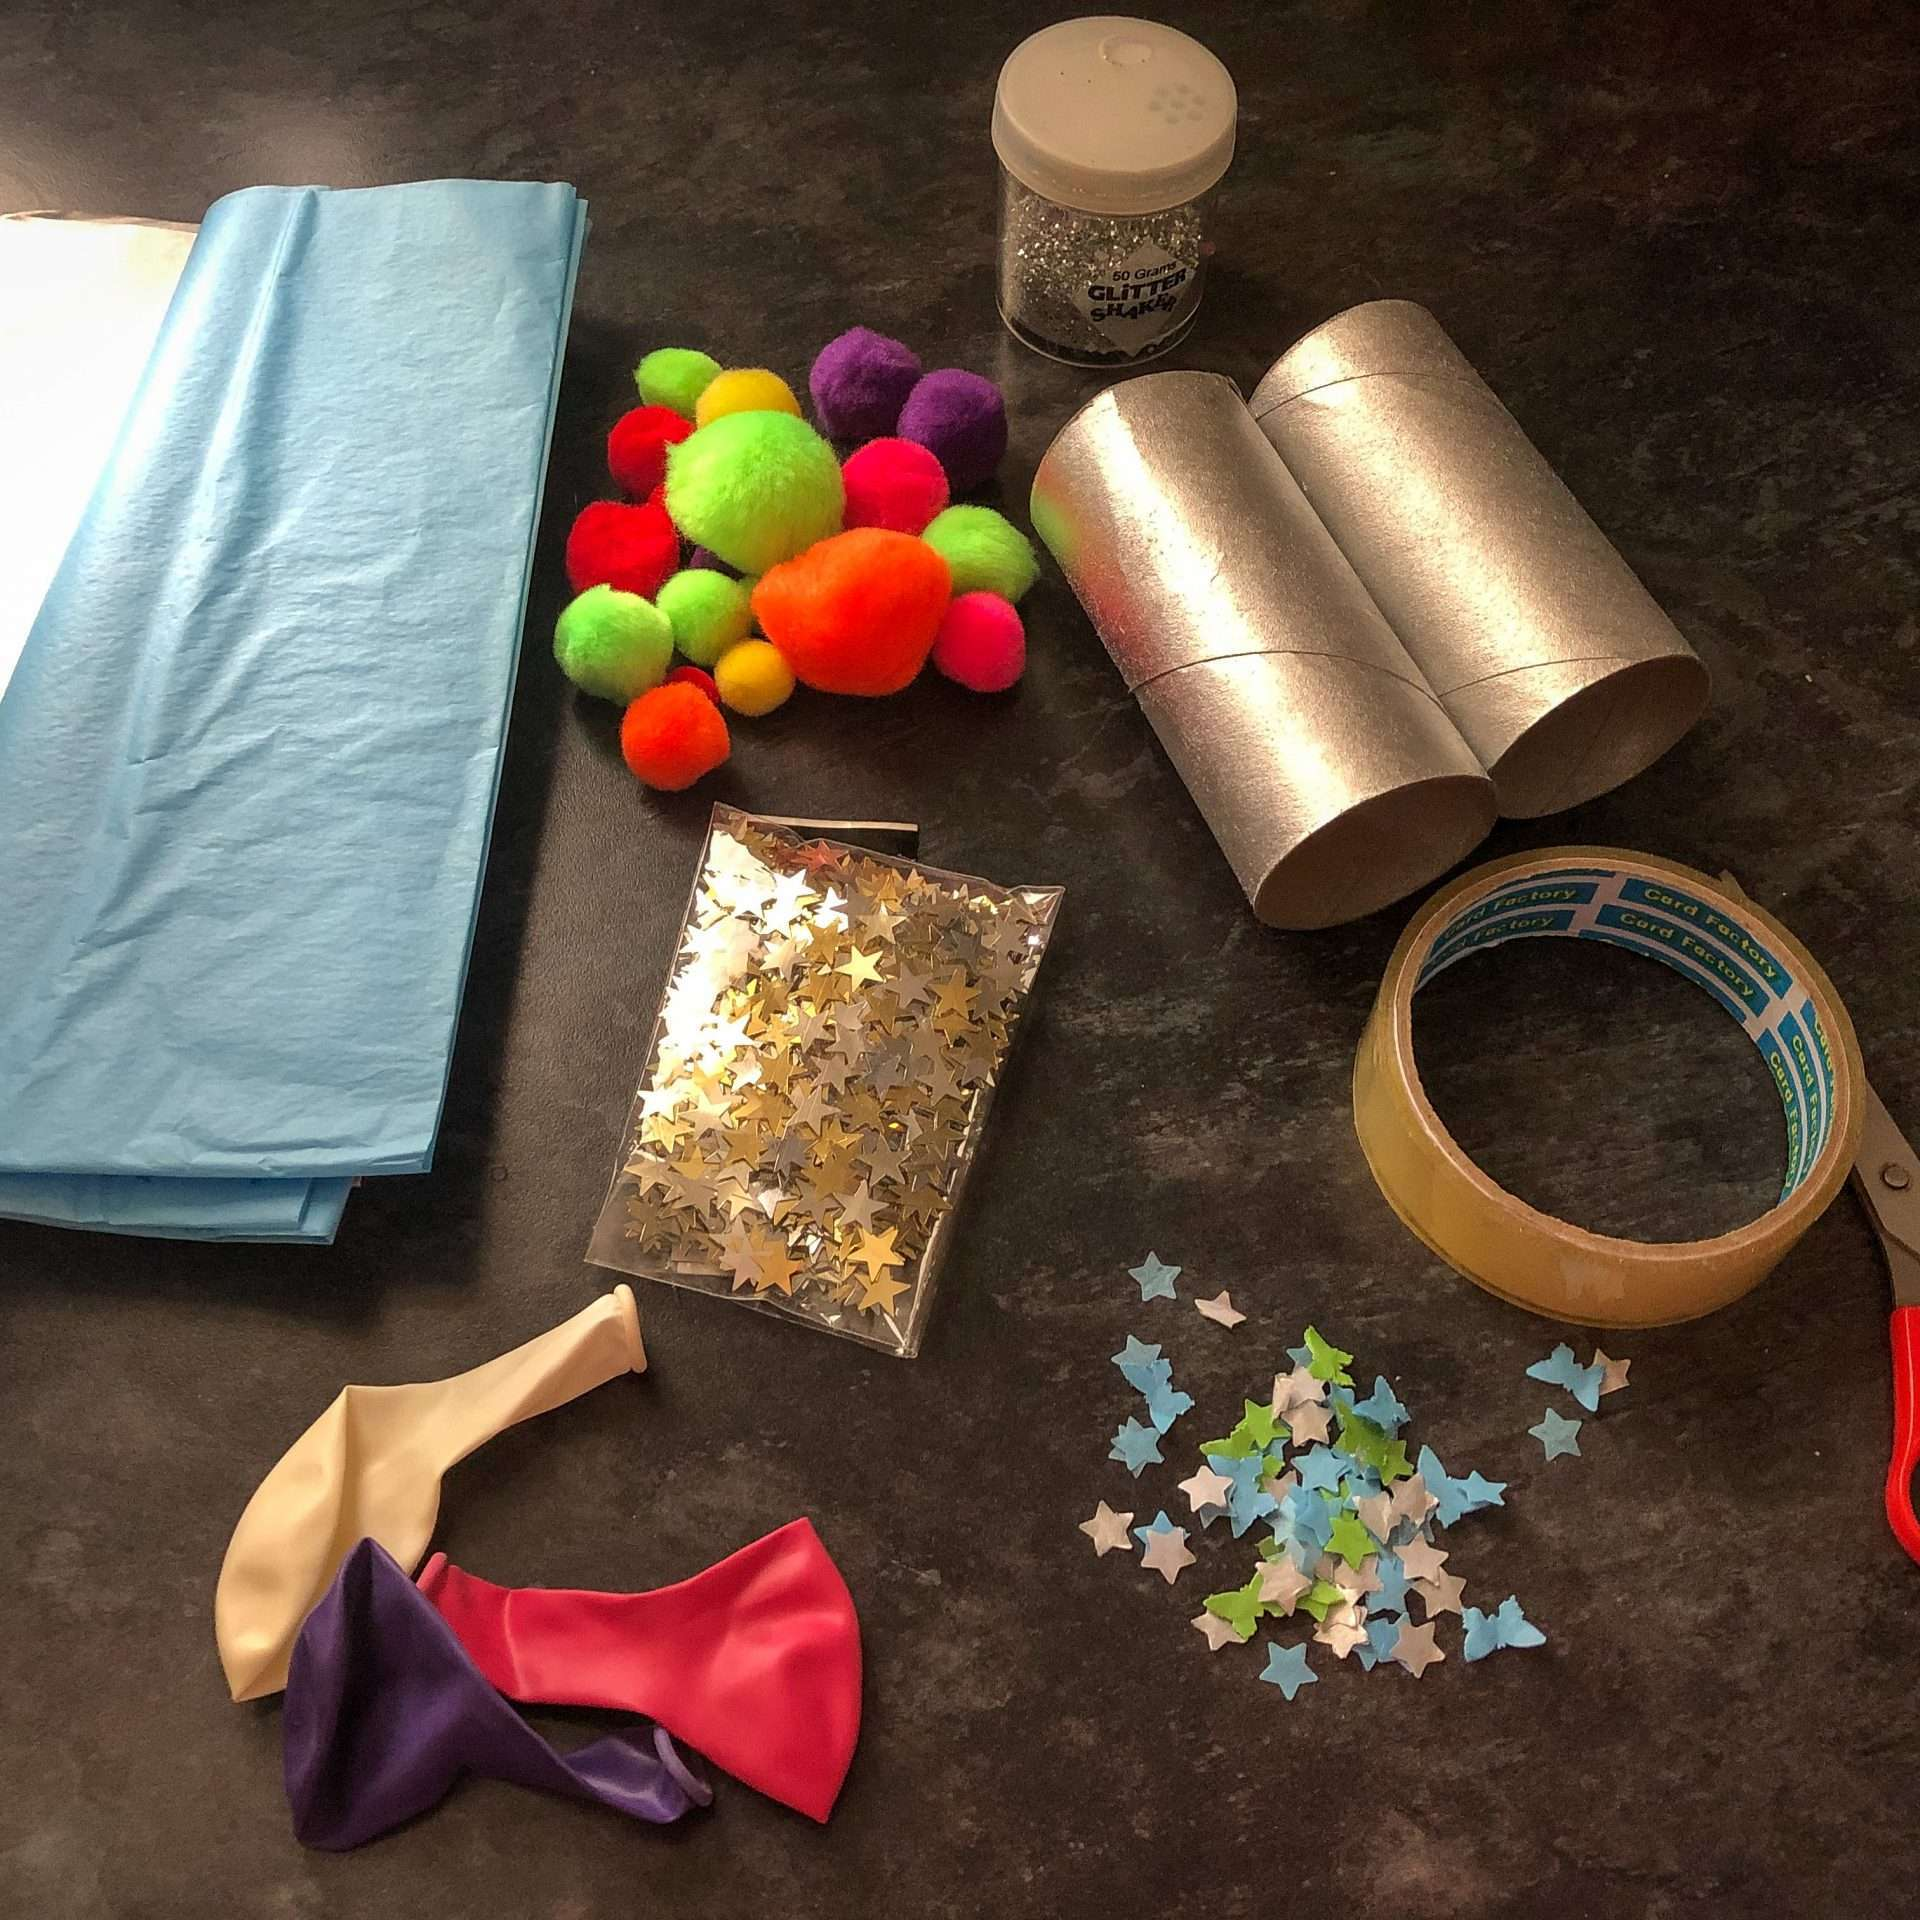 An assortment of arts and crafts are resting on a dark grey countertop. Items include tissue paper, pompoms, glitter, gold and silver stars, balloons